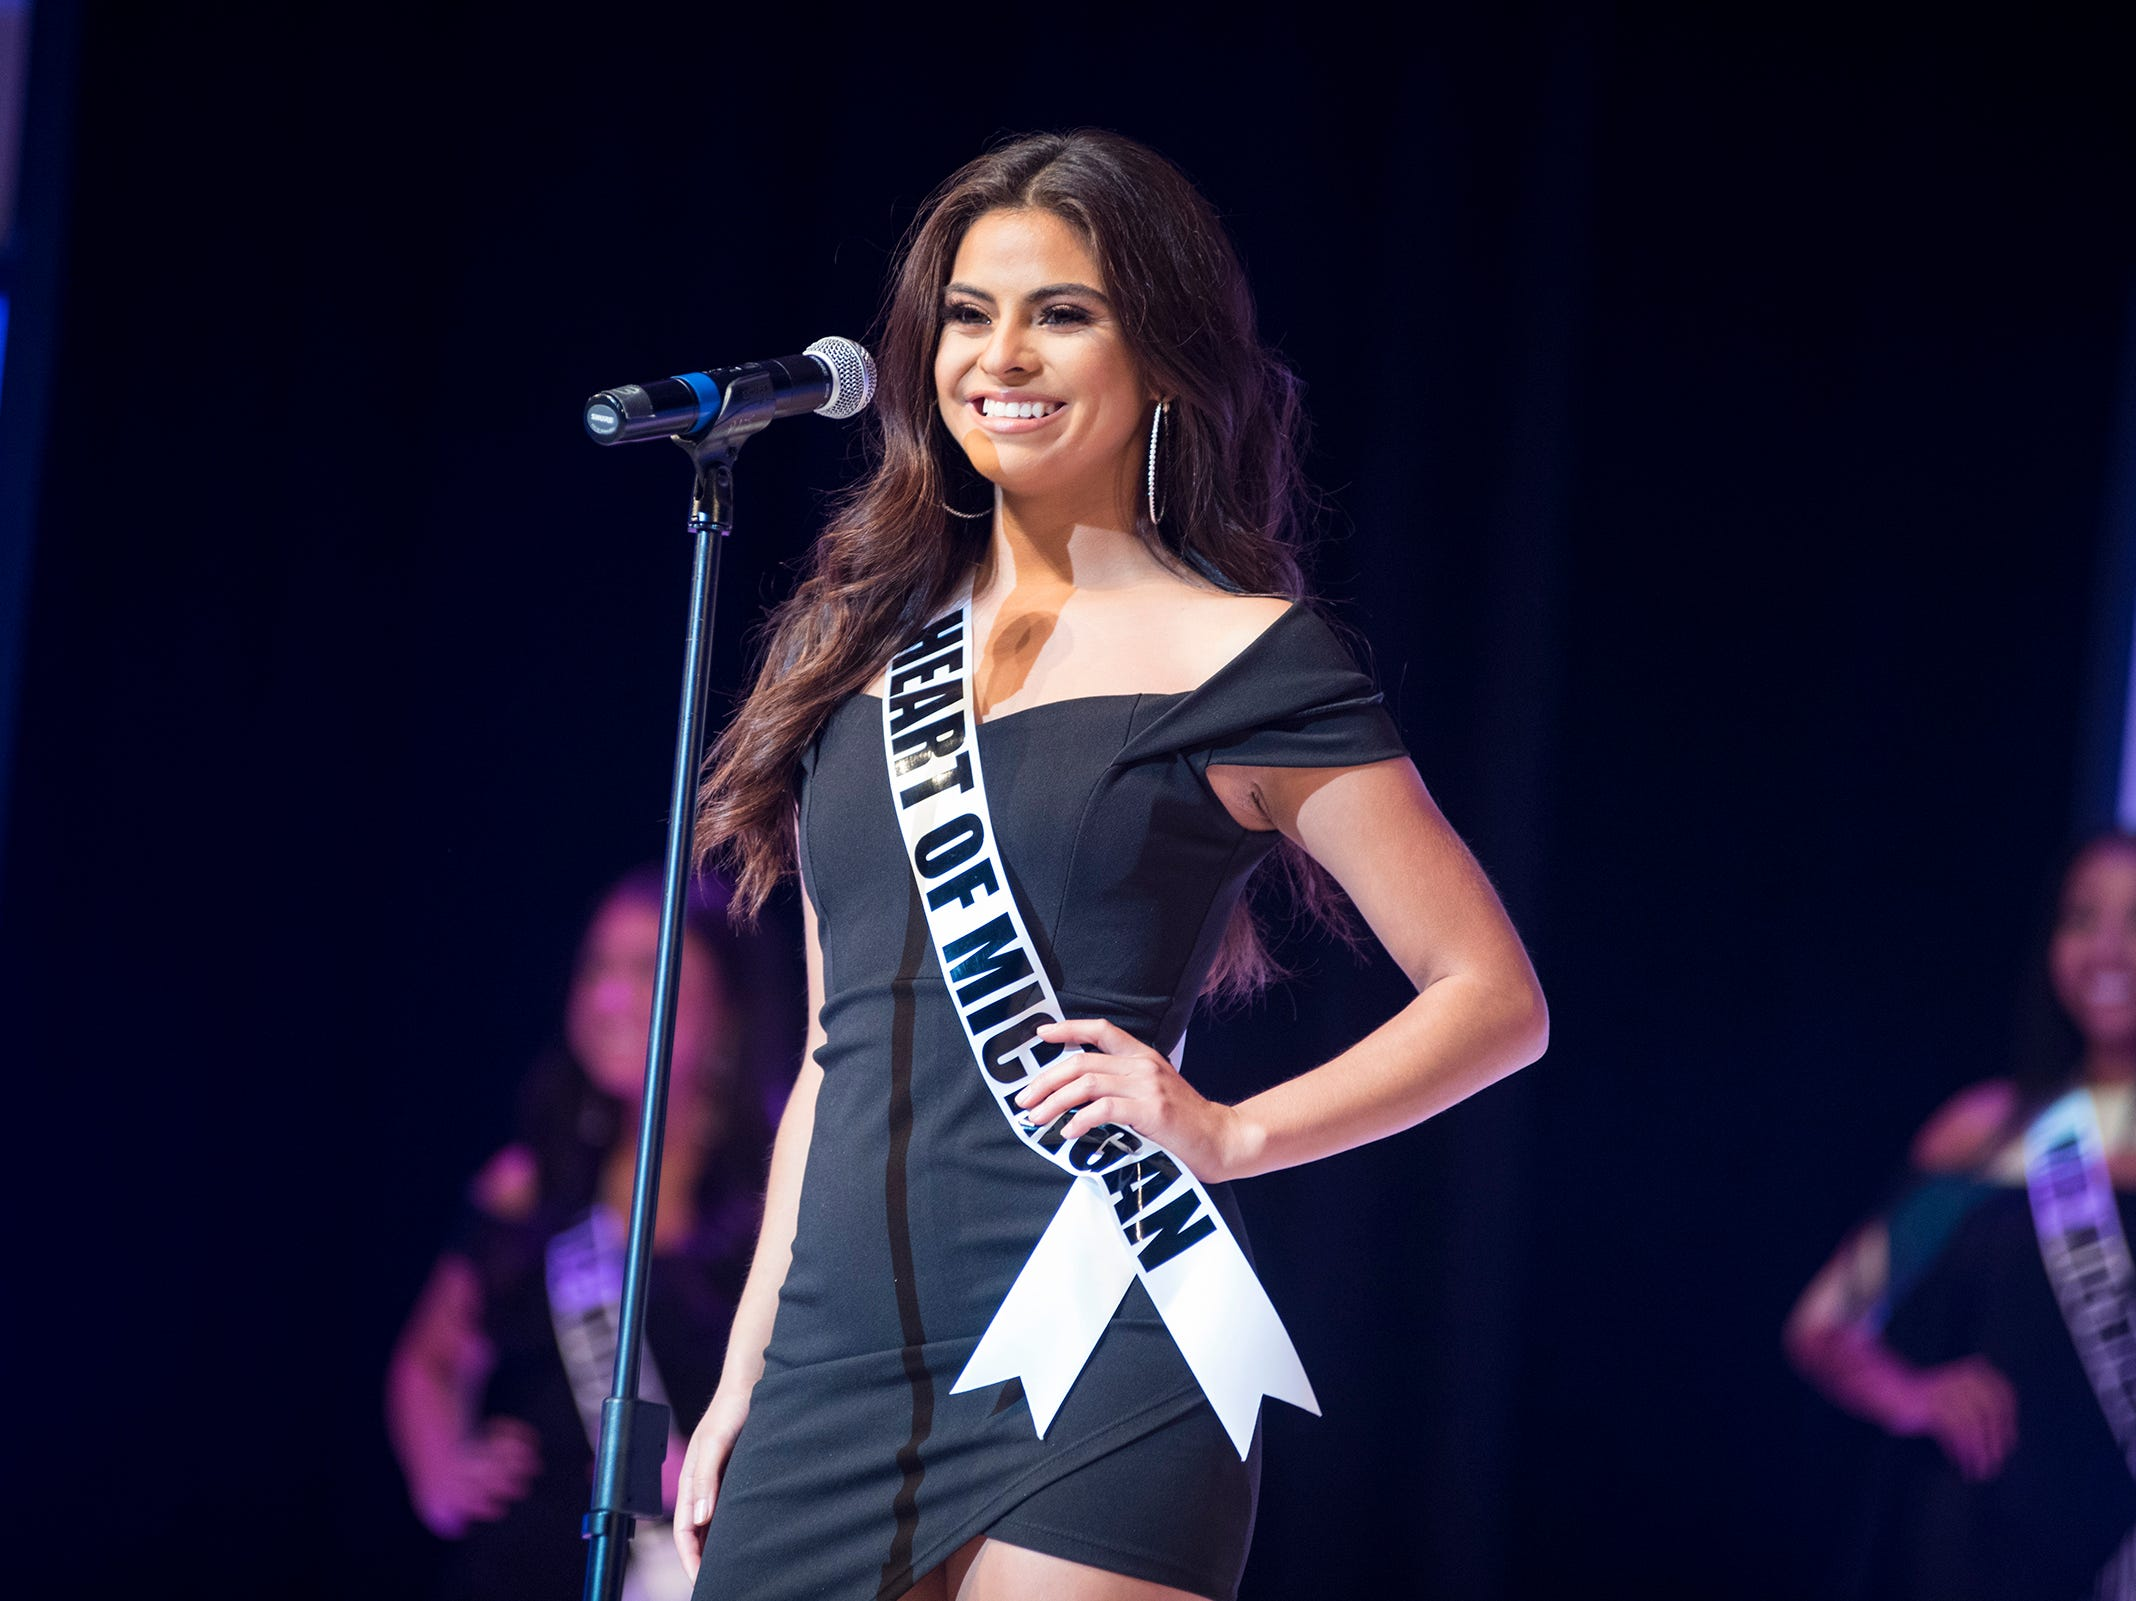 Miss Heart of Michigan Laura Esqueda introduces herself Saturday, Sept. 22, 2018 at the start of the Miss Michigan USA competition at McMorran Theater.